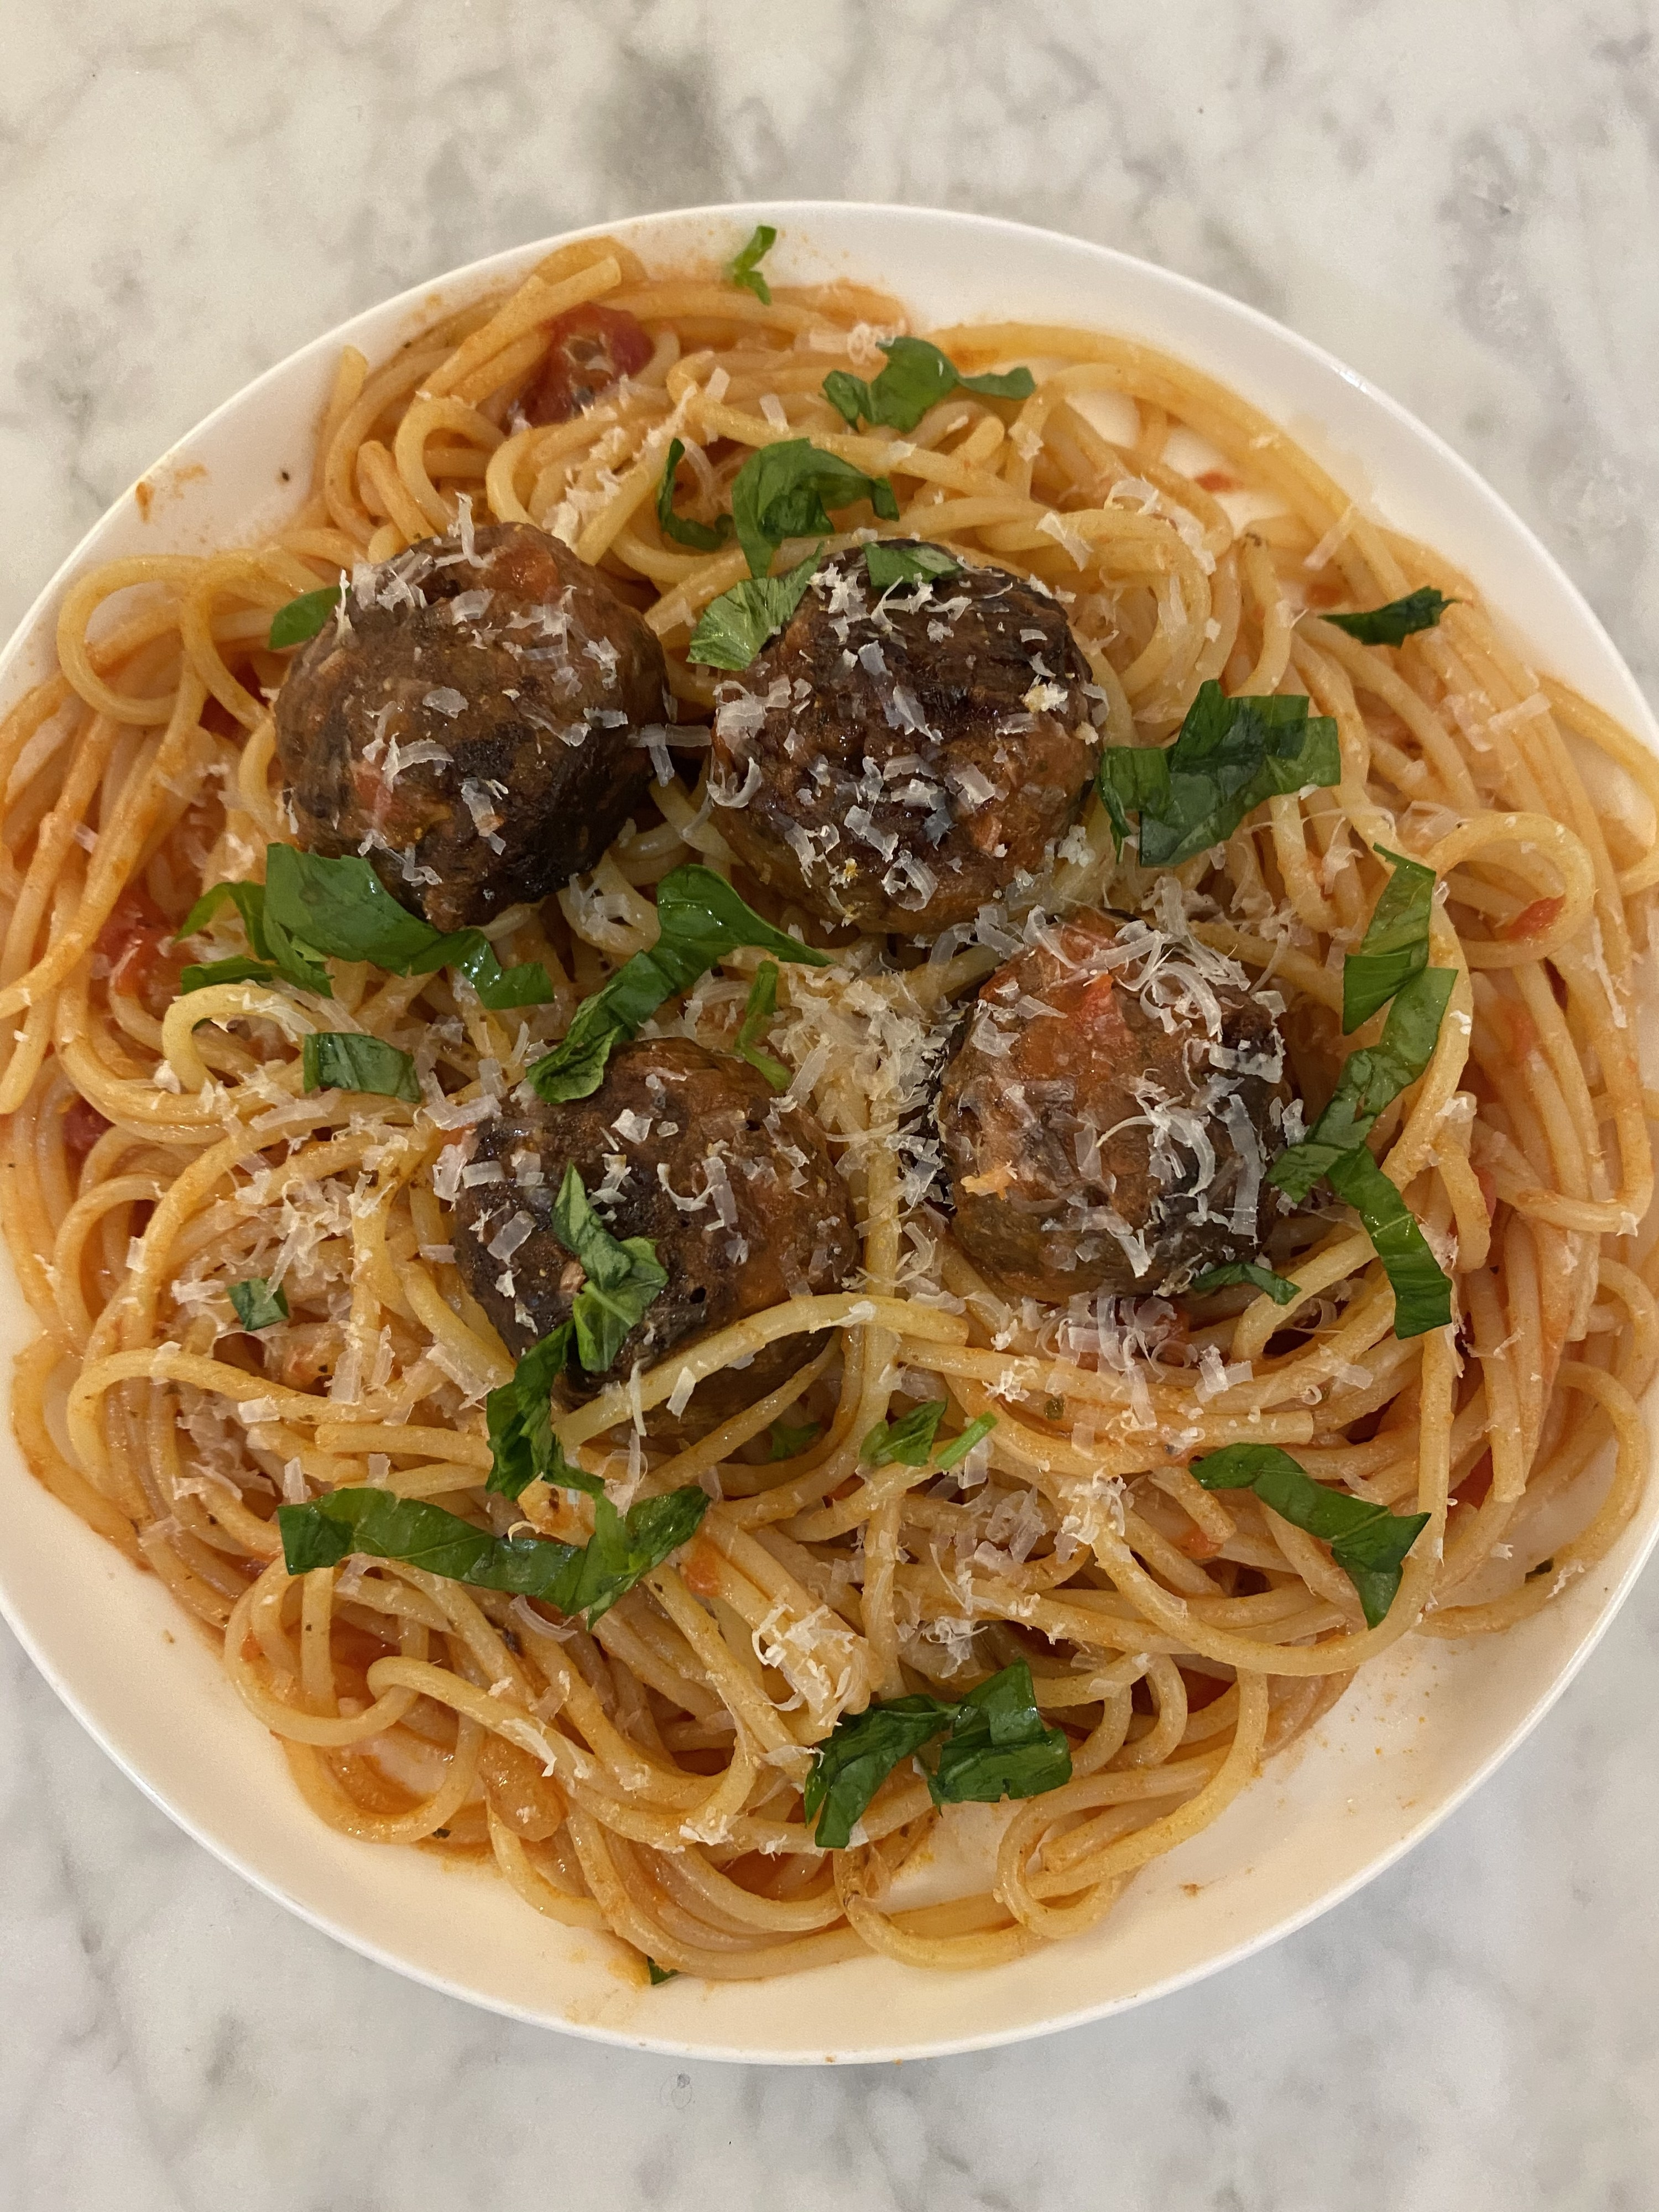 A plate of spaghetti with tomato sauce, basil, parmesan, and Beyond Meat meatballs on top.